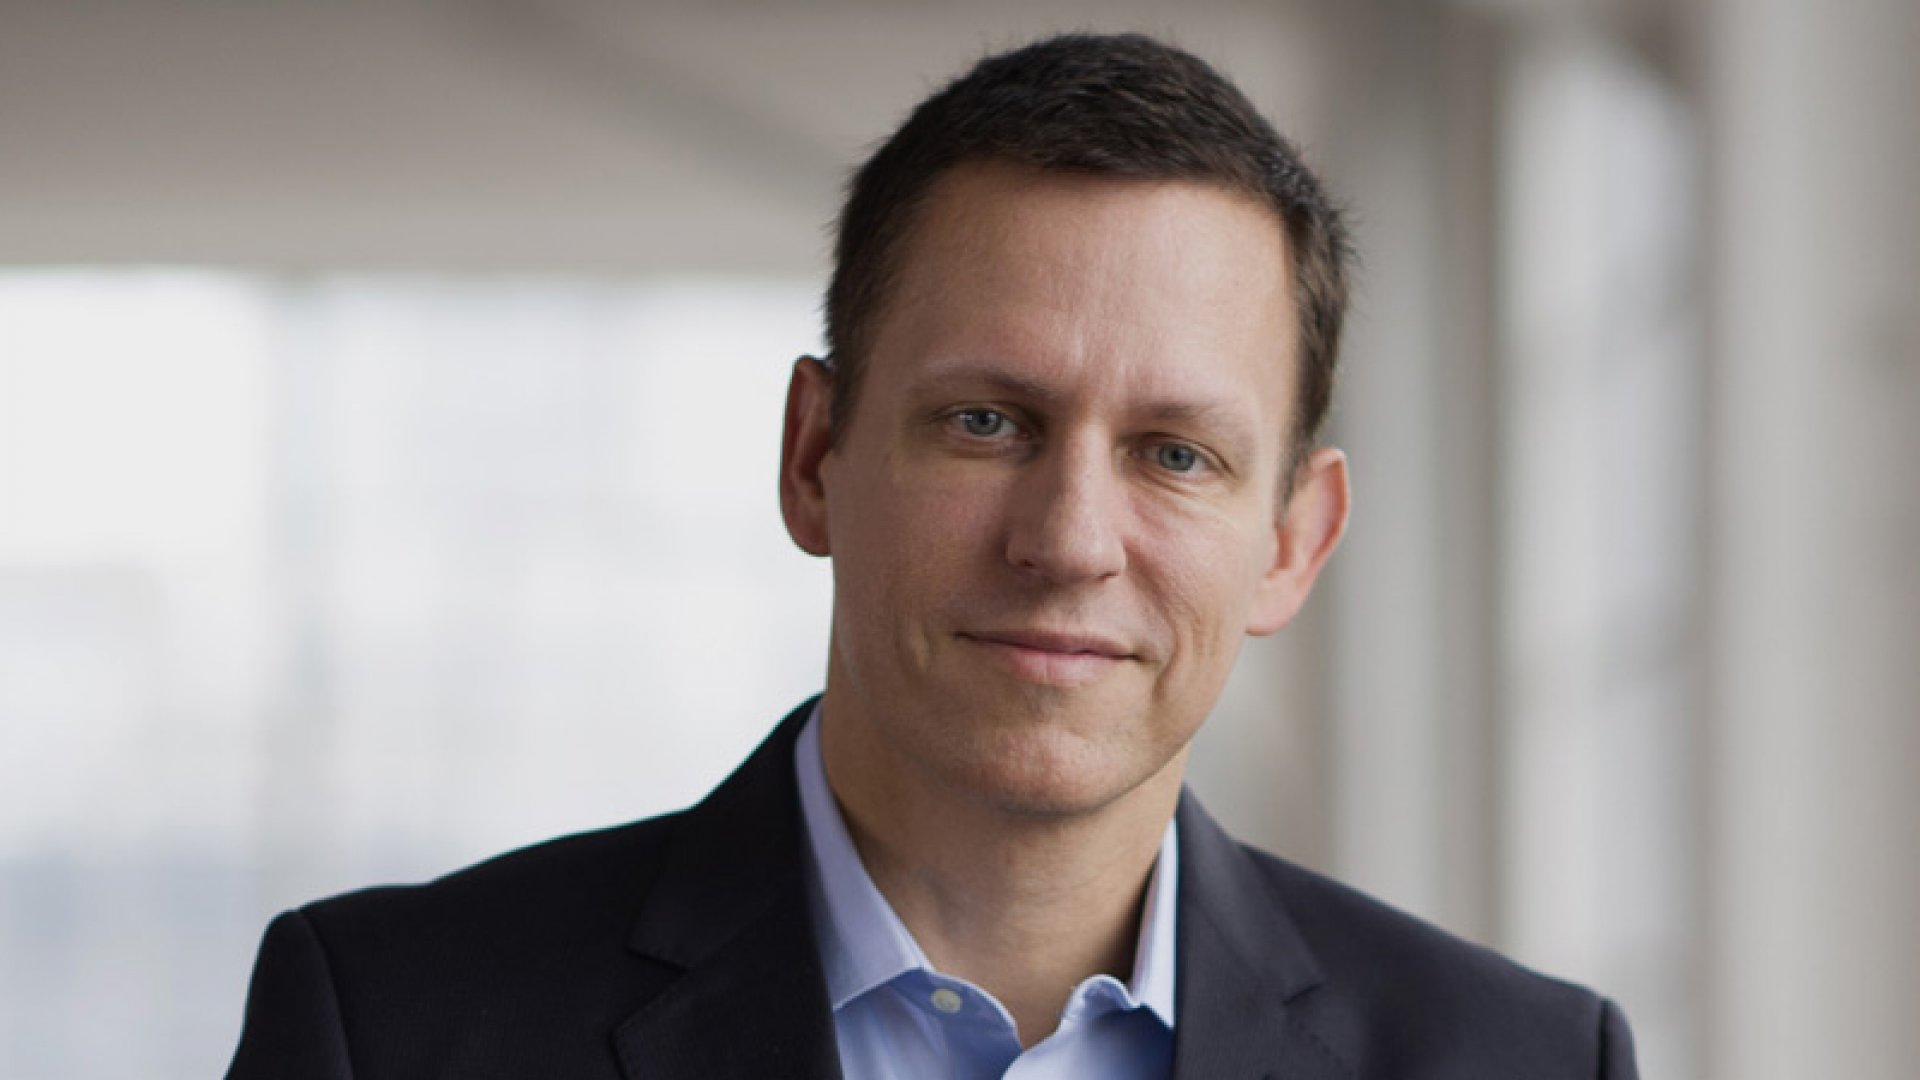 Peter Thiel Chased Off Stage By Angry UC Berkeley Protesters